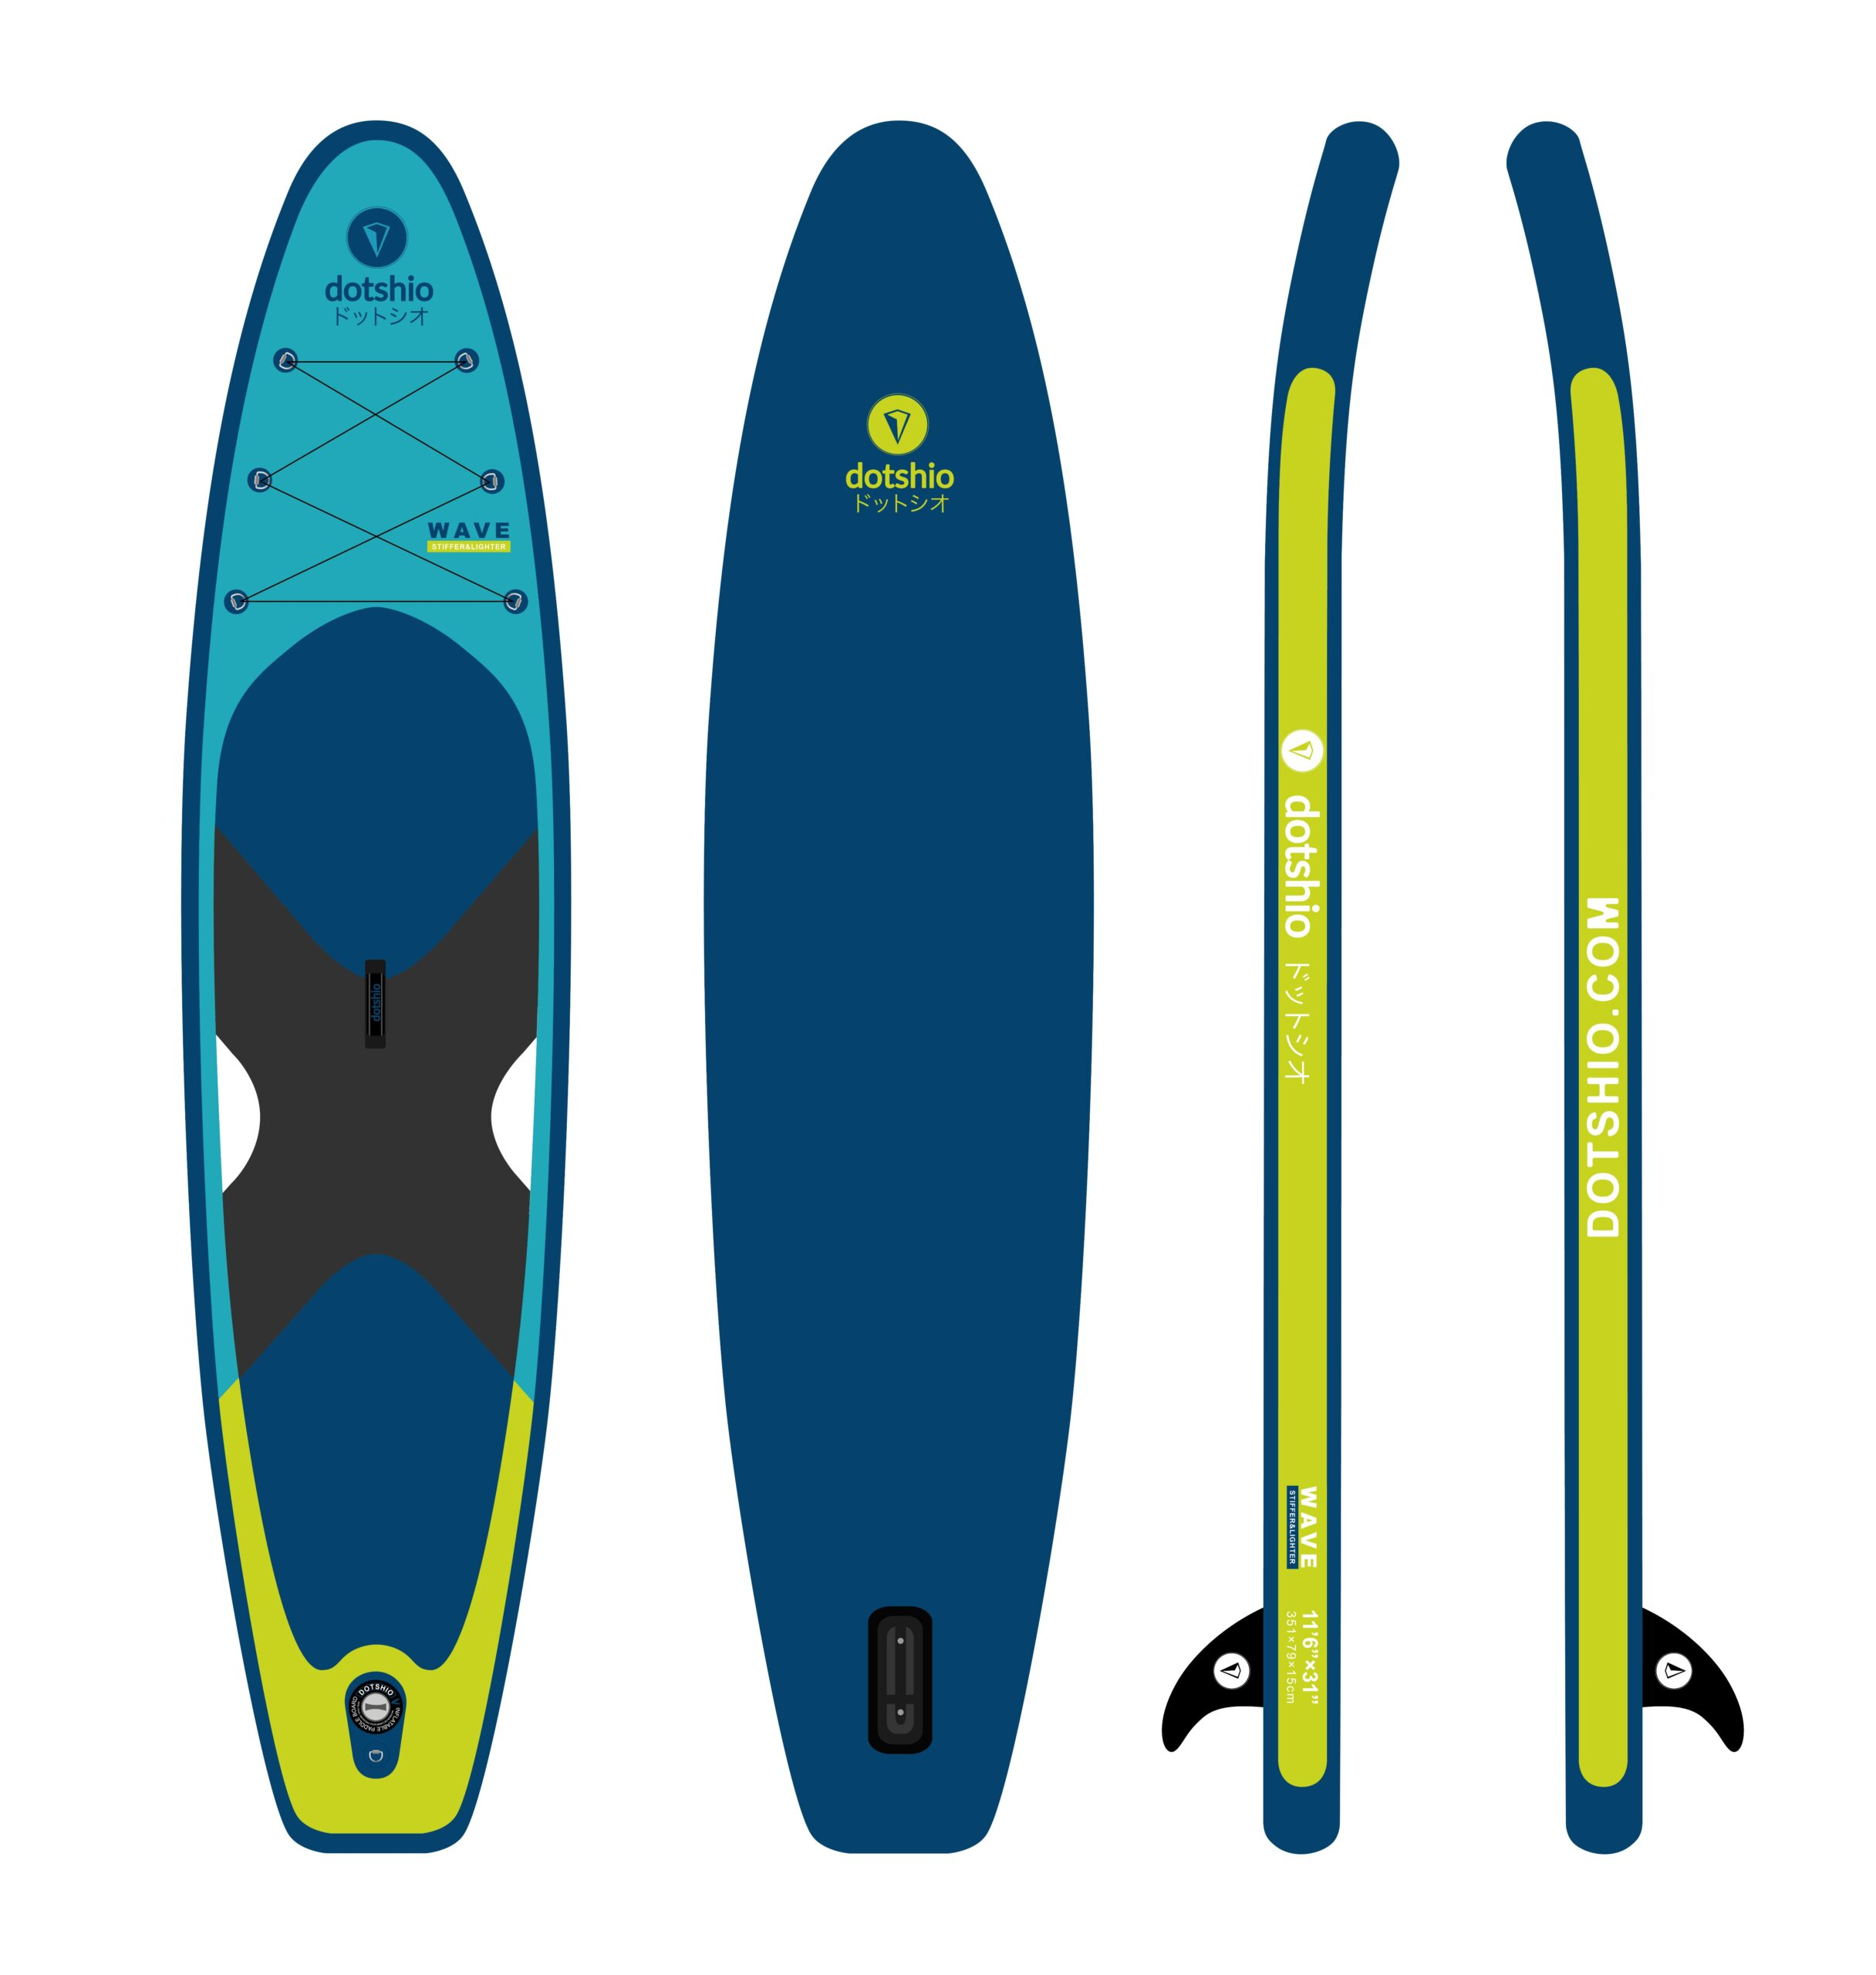 TOURING-WAVE-dotshio_dotshio_Sunset_boards_INFLATABLE_PADDLE_SURF_BOARDS_wave_cheap_sup_boards